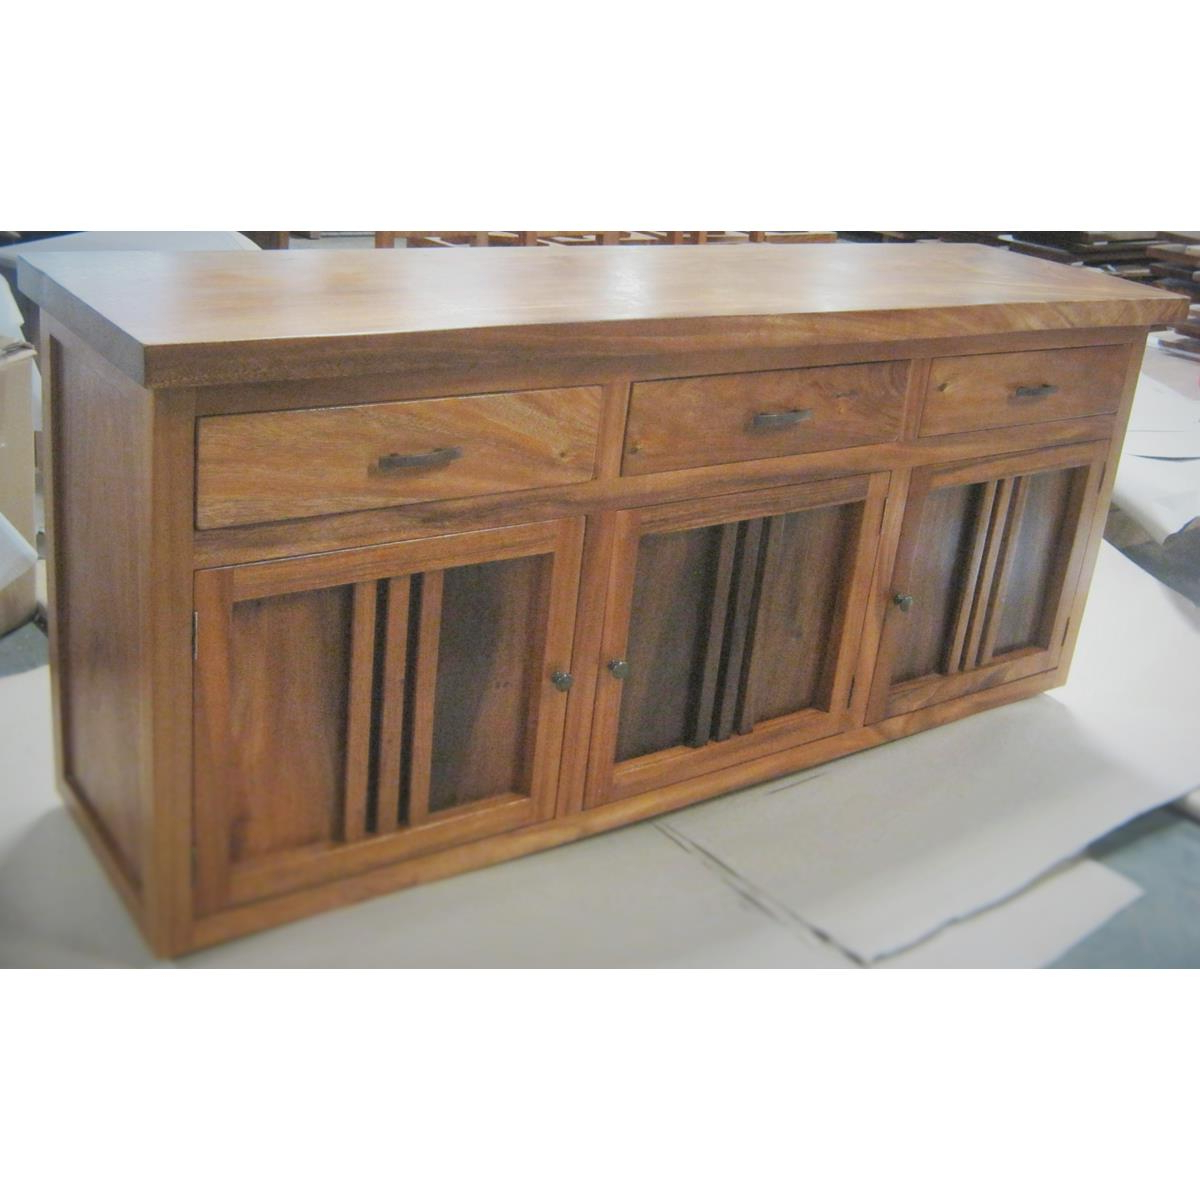 Newest Natural Oak Wood 78 Inch Sideboards With Monsoon Wood   Dining Buffet At Elementfinefurniture Hand Made (View 13 of 20)